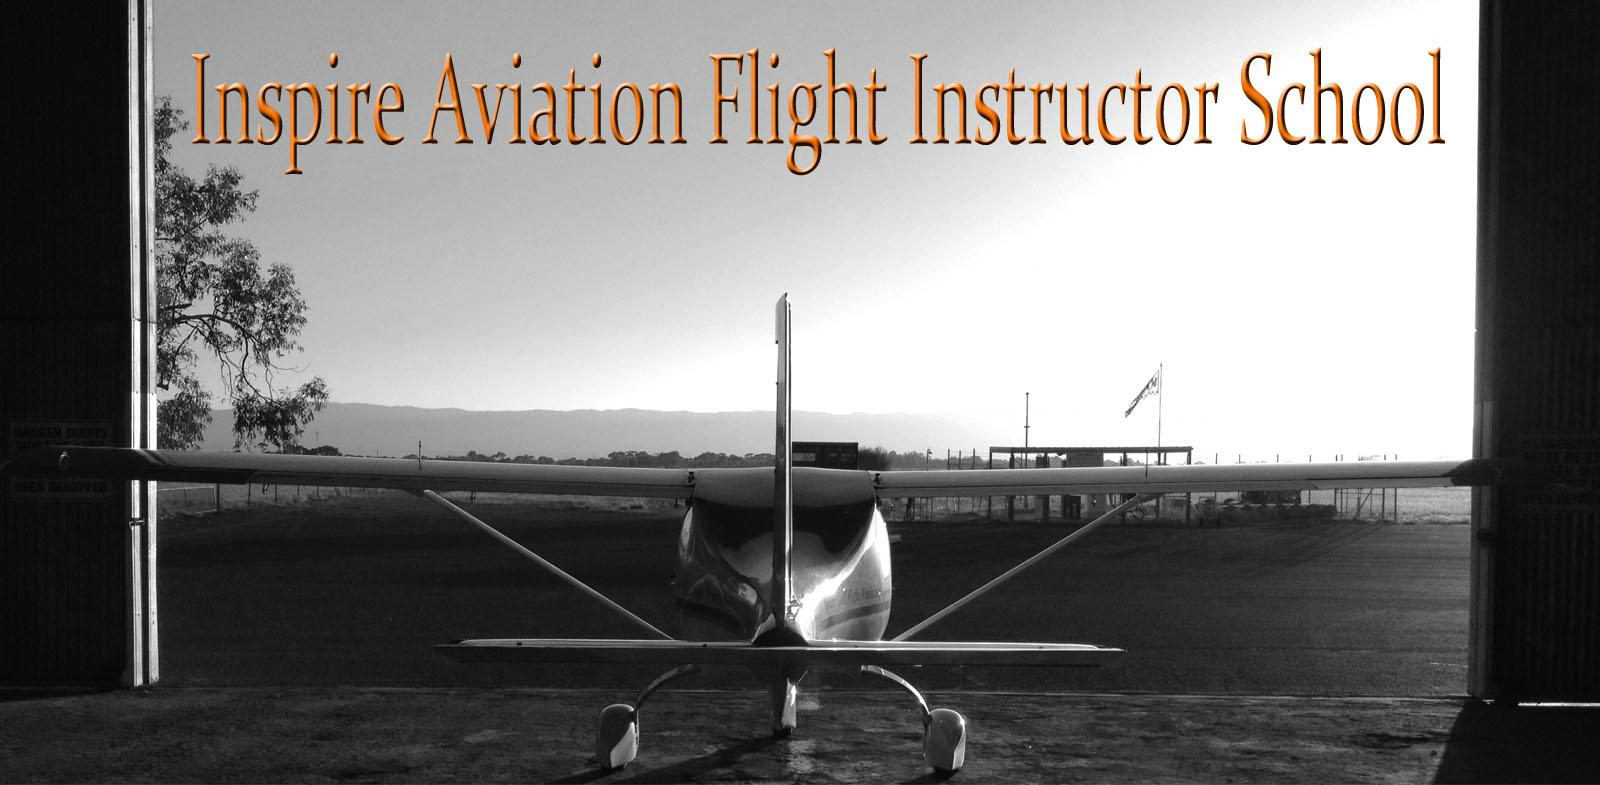 Inspire Aviation Flight Instructor School